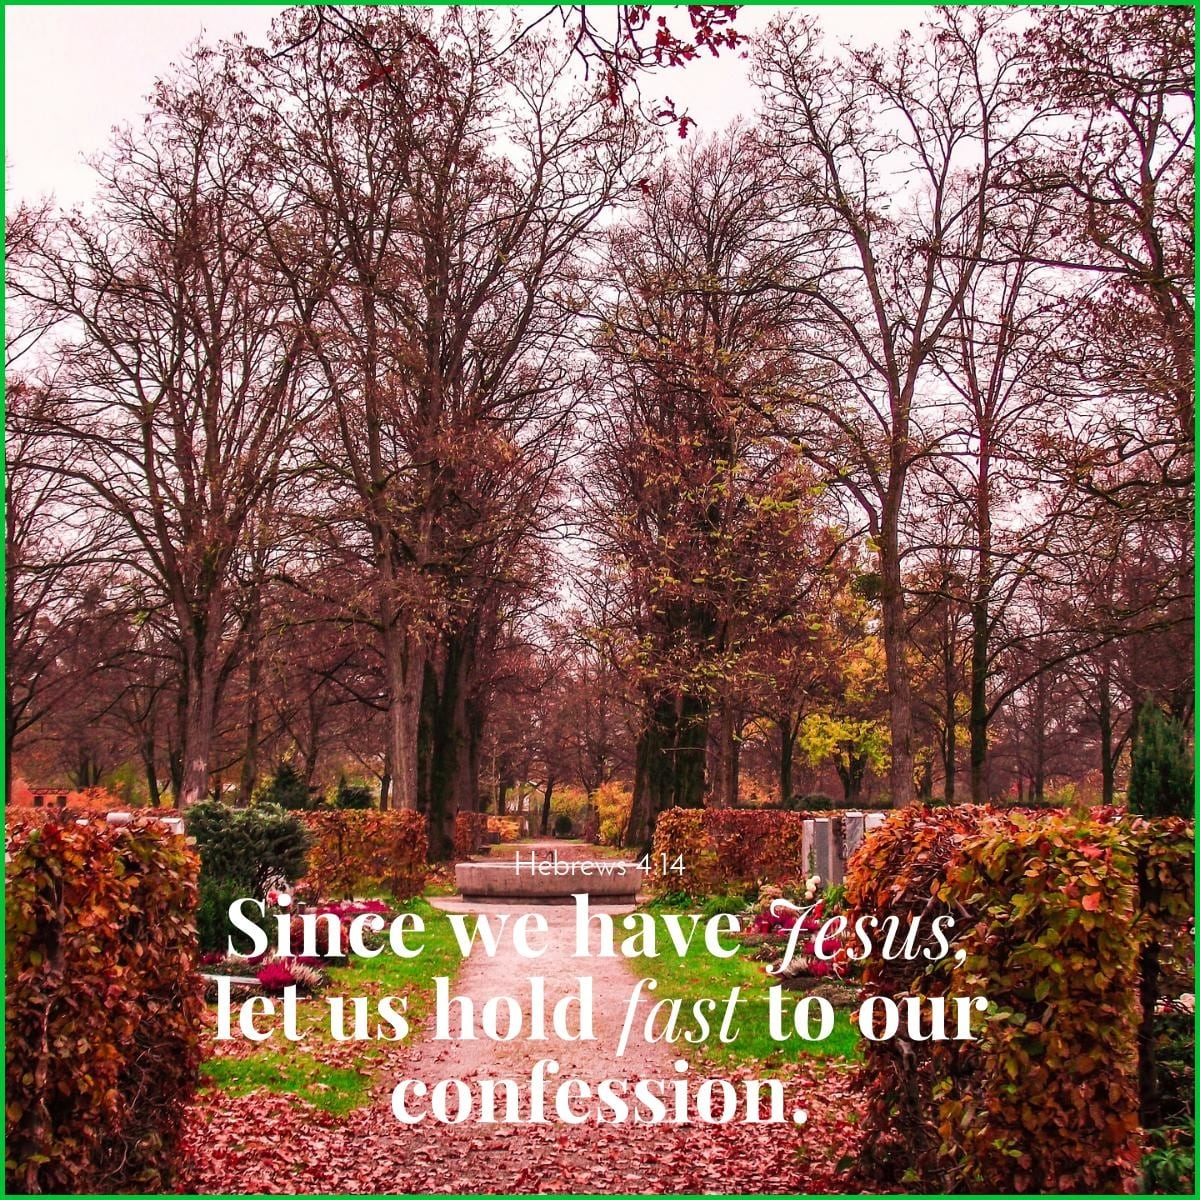 Since we have Jesus, let us hold fast to our confession. Hebrews 4:14